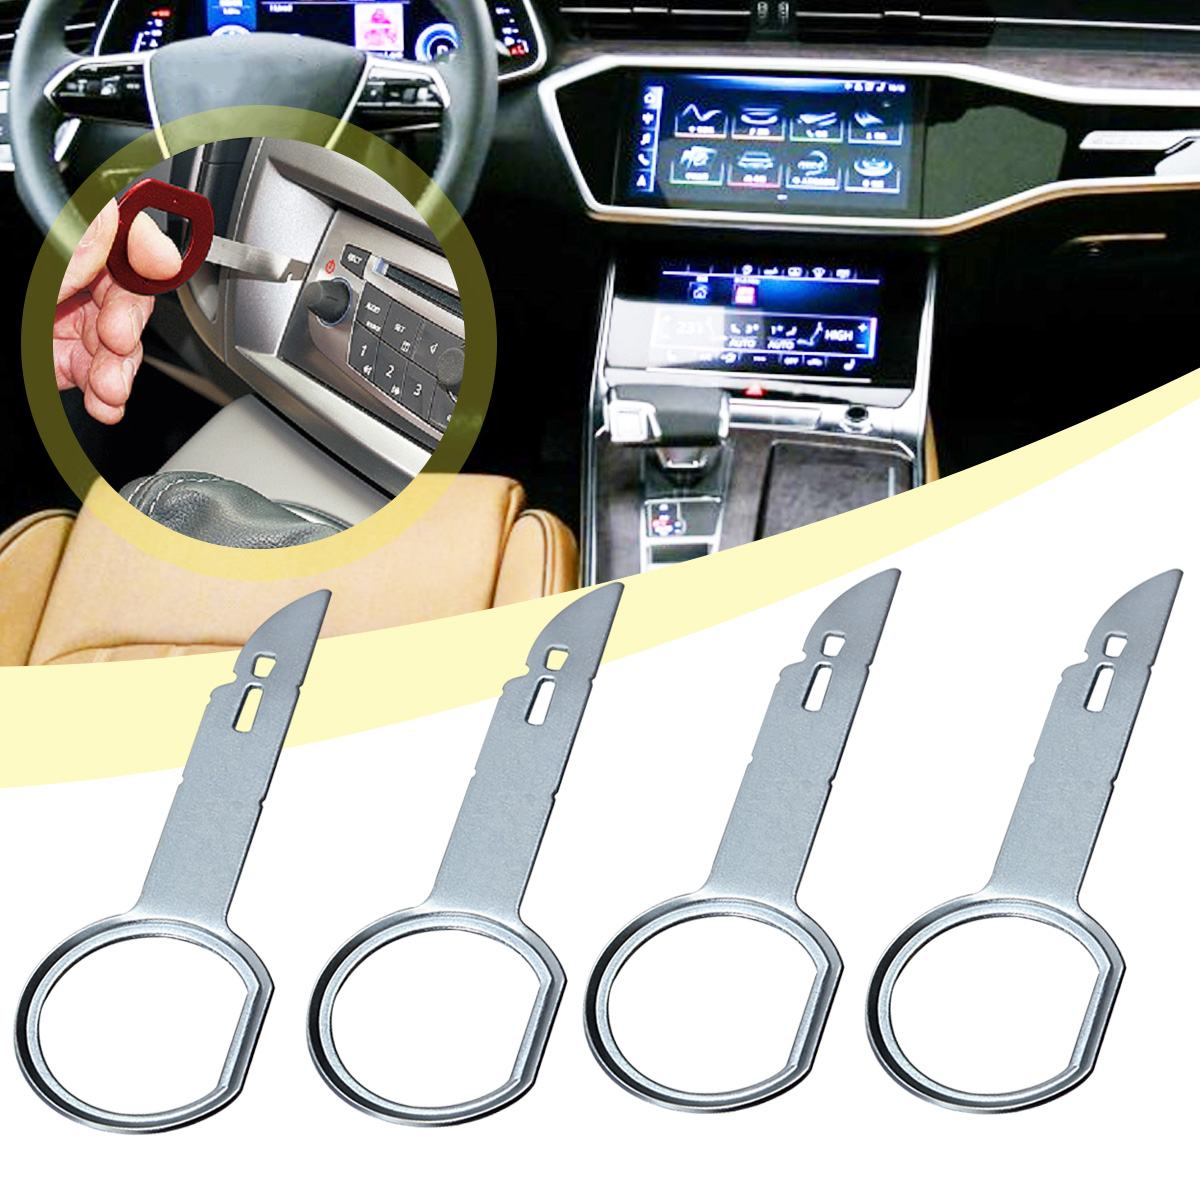 2pcs-4pcs-useful-practical-radio-stereo-release-removal-install-tool-key-installation-for-vw-for-audi-for-ford-for-porsche